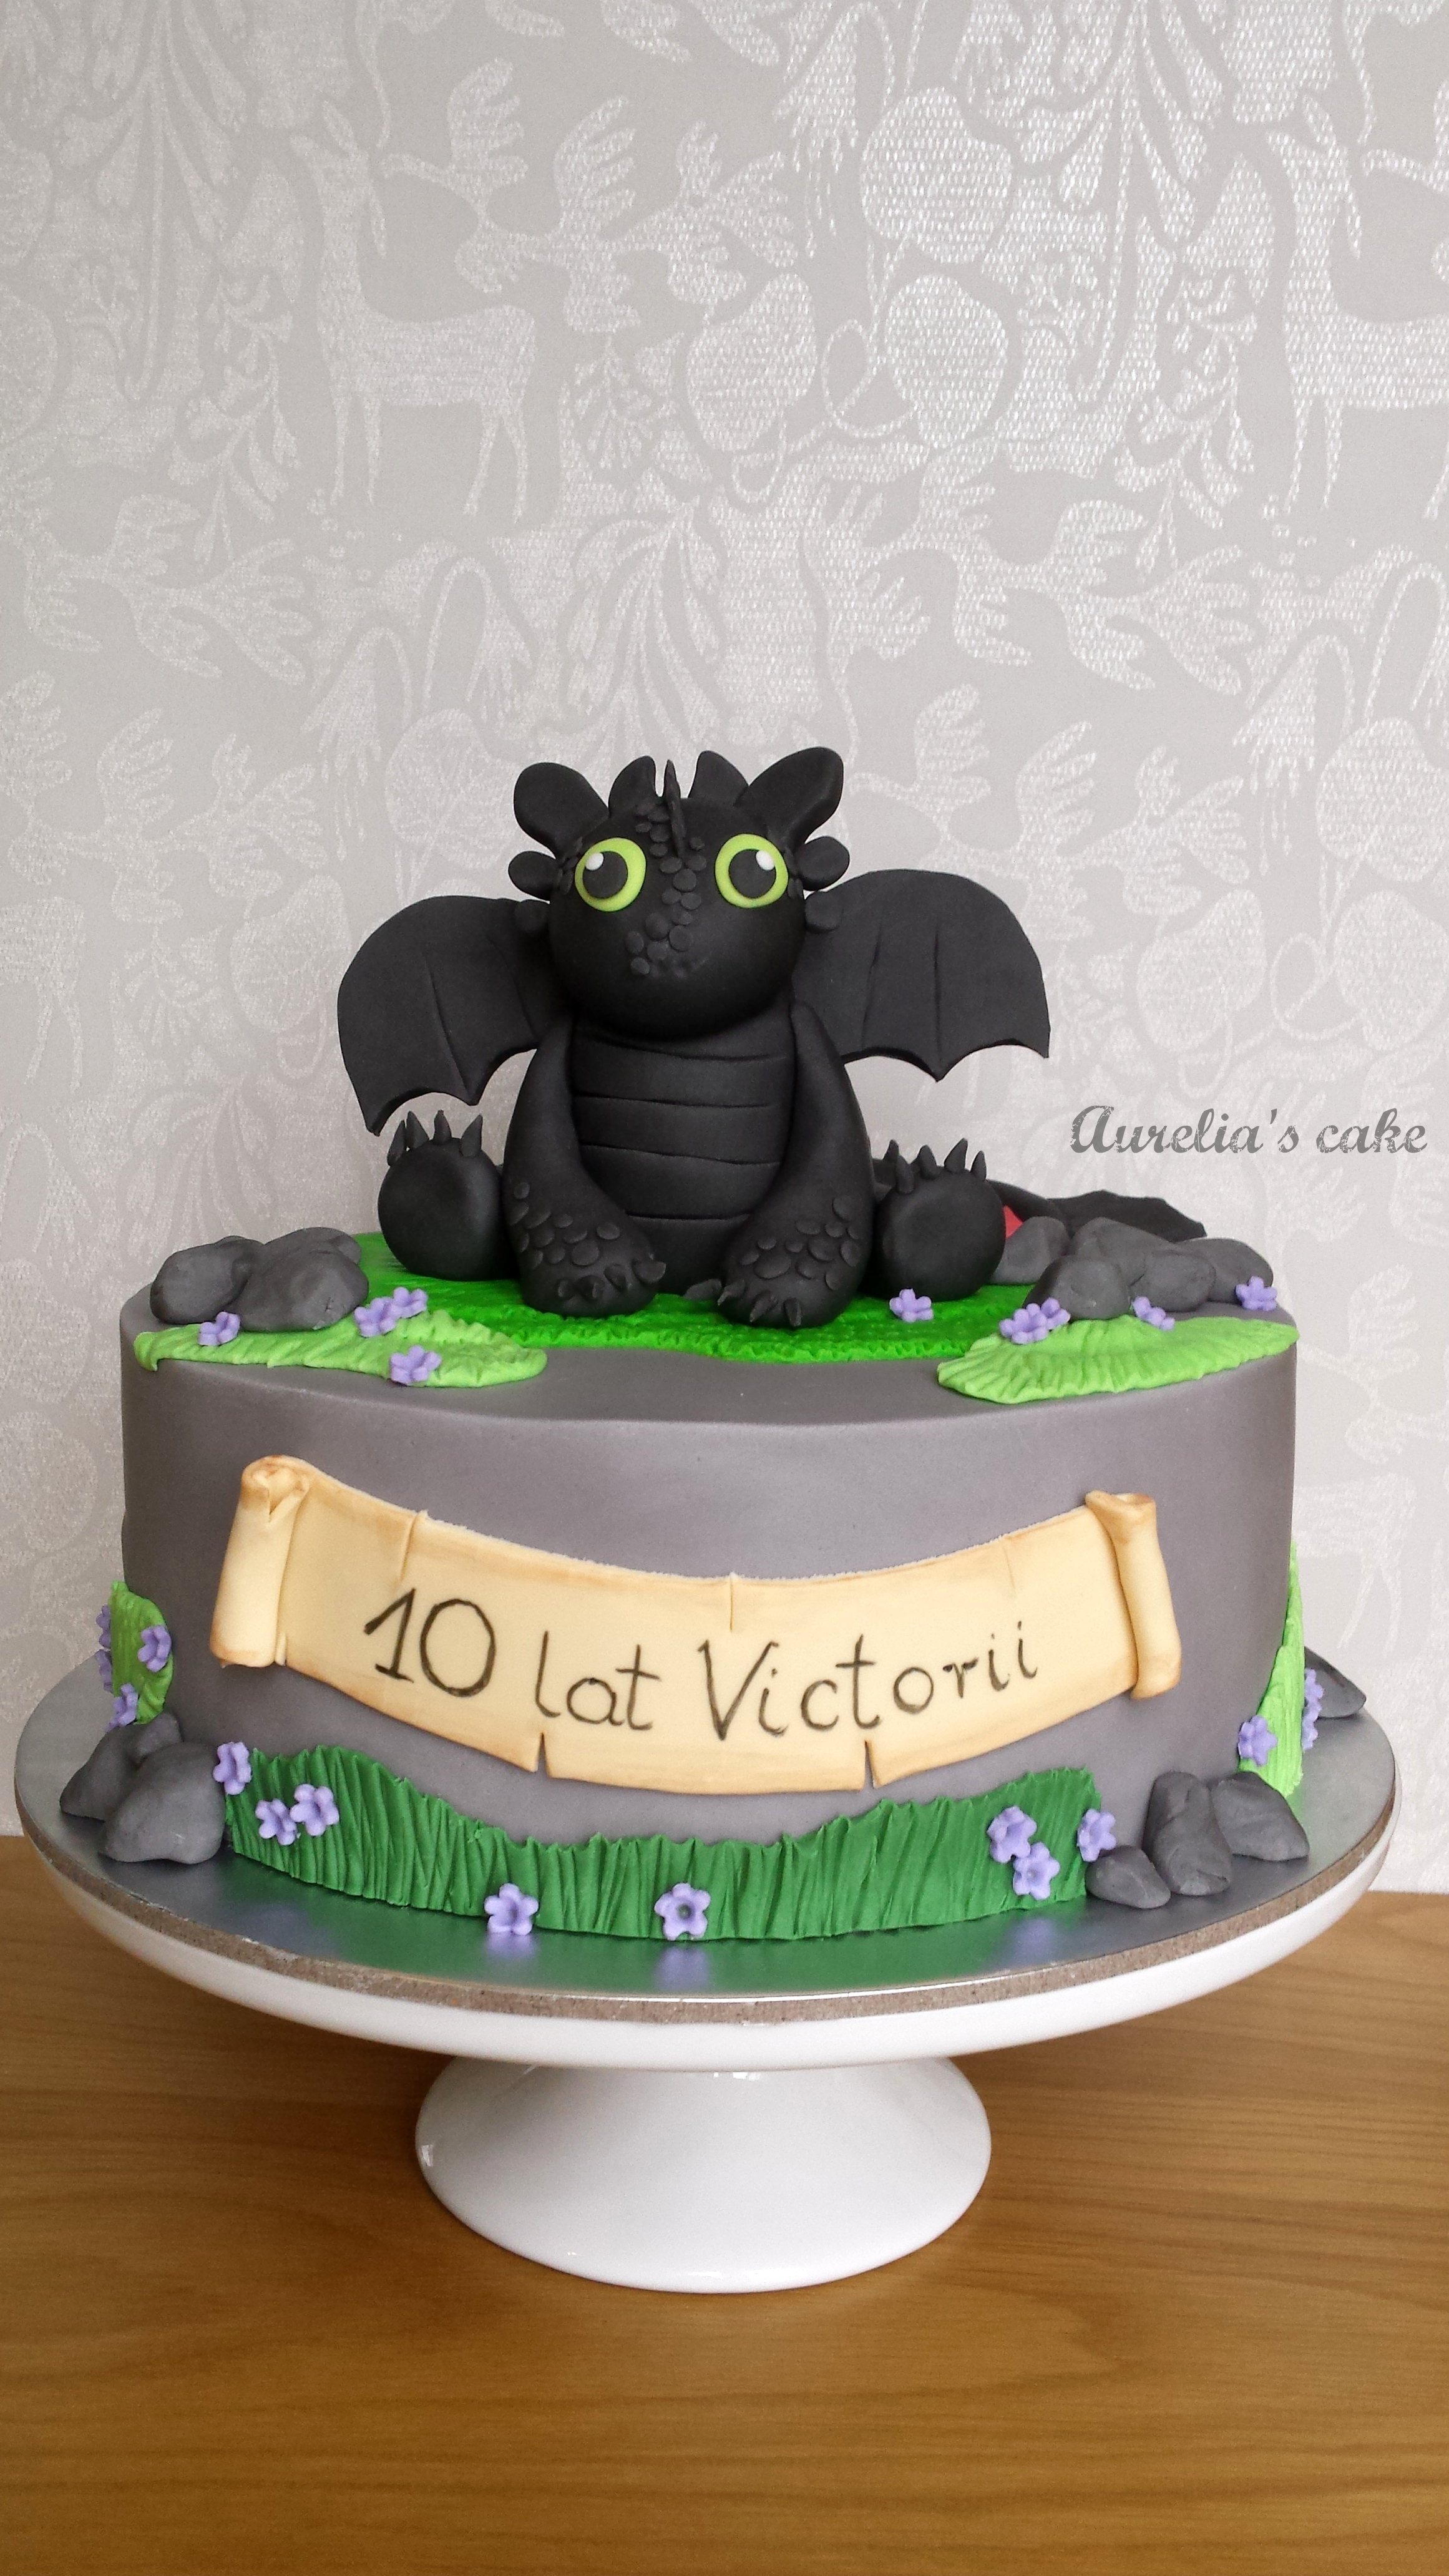 Toothles cake.